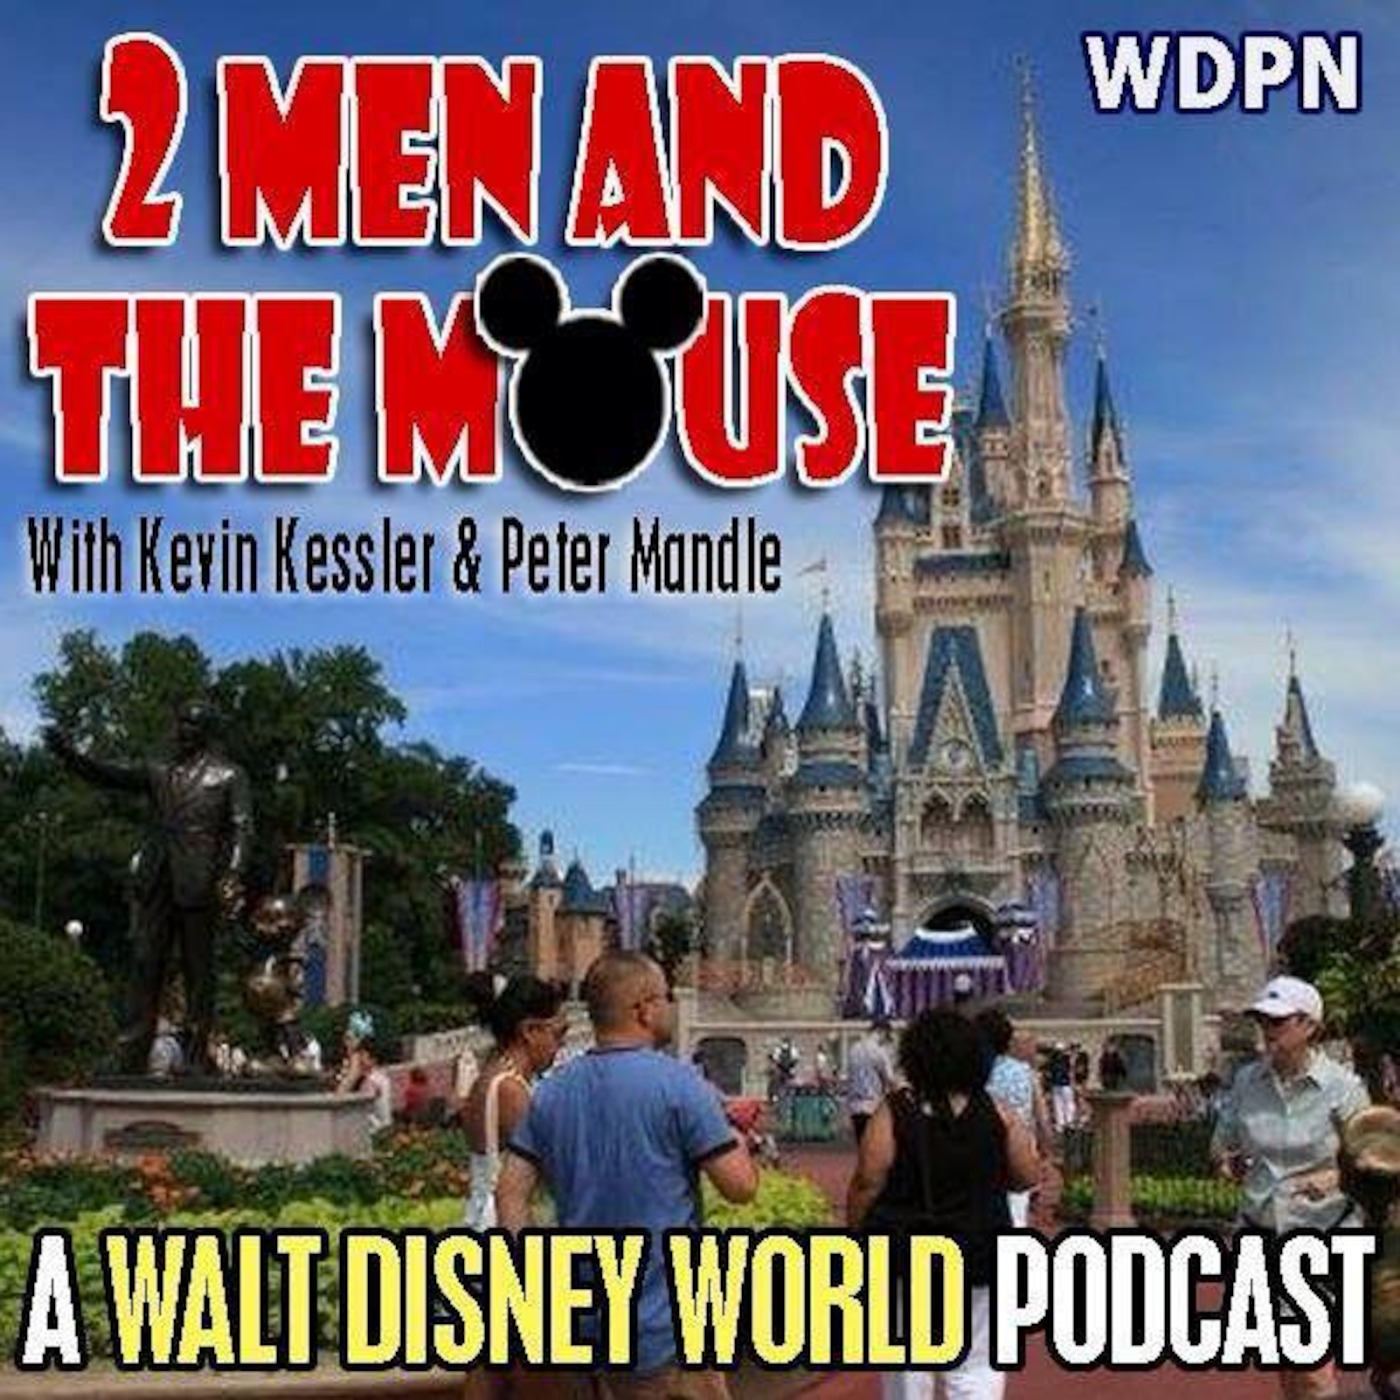 2 men and the mouse episode 93 christmas day in walt disney world